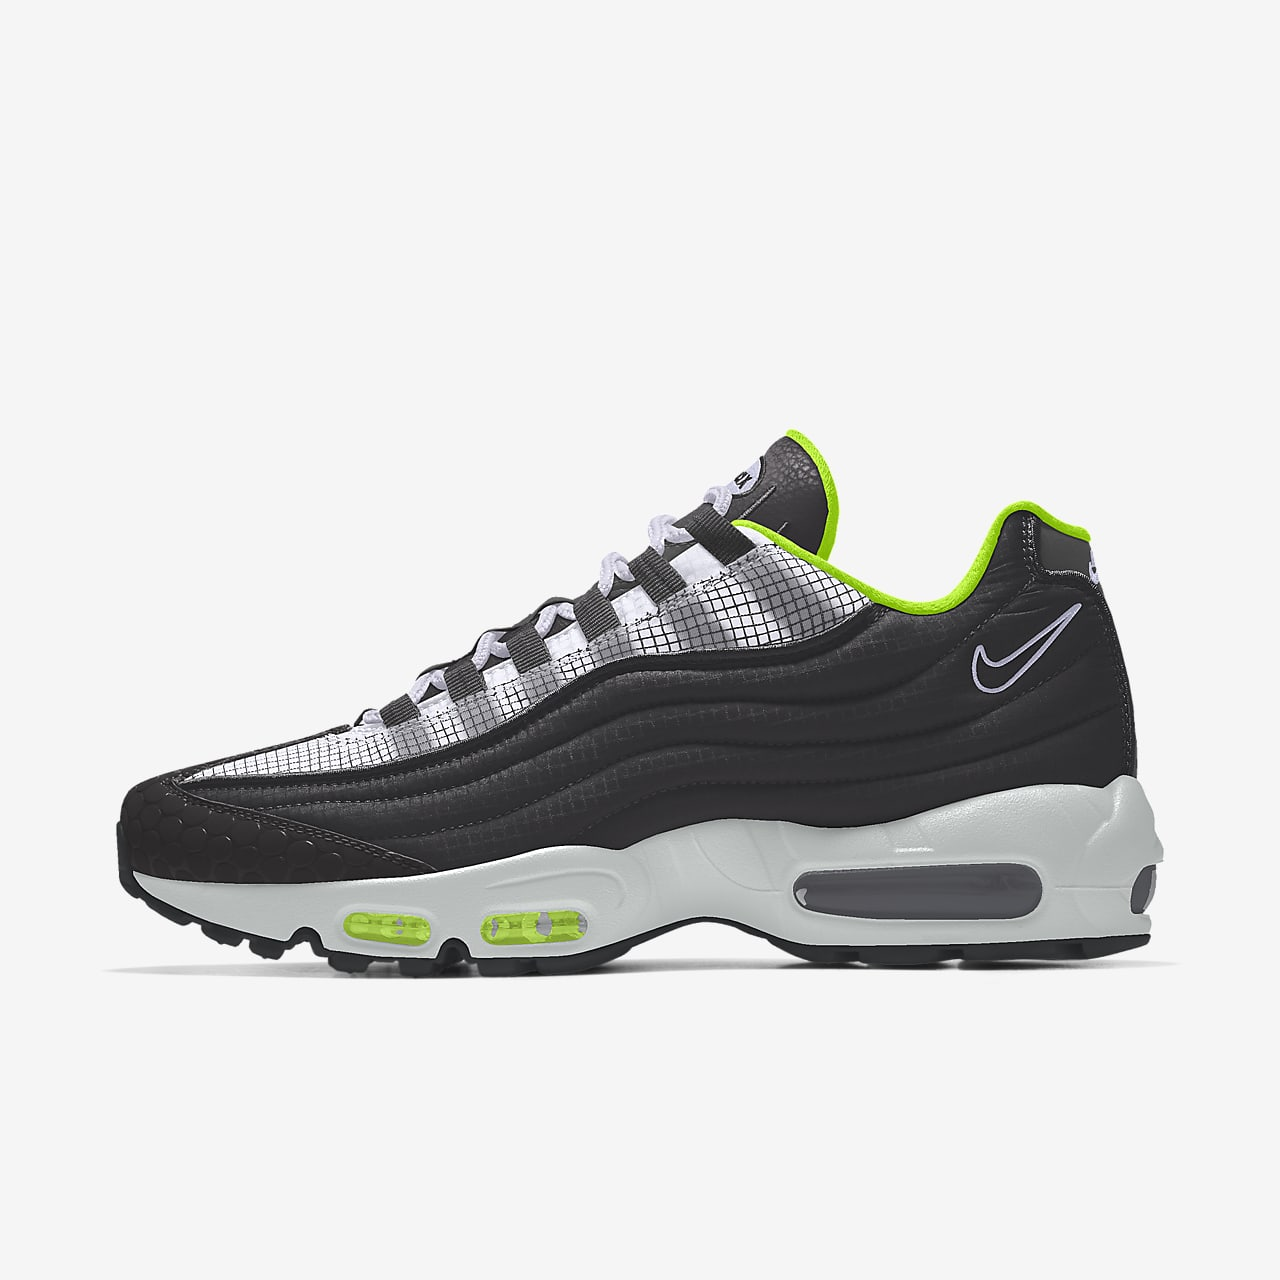 Calzado personalizado Nike Air Max 95 3M™ By You